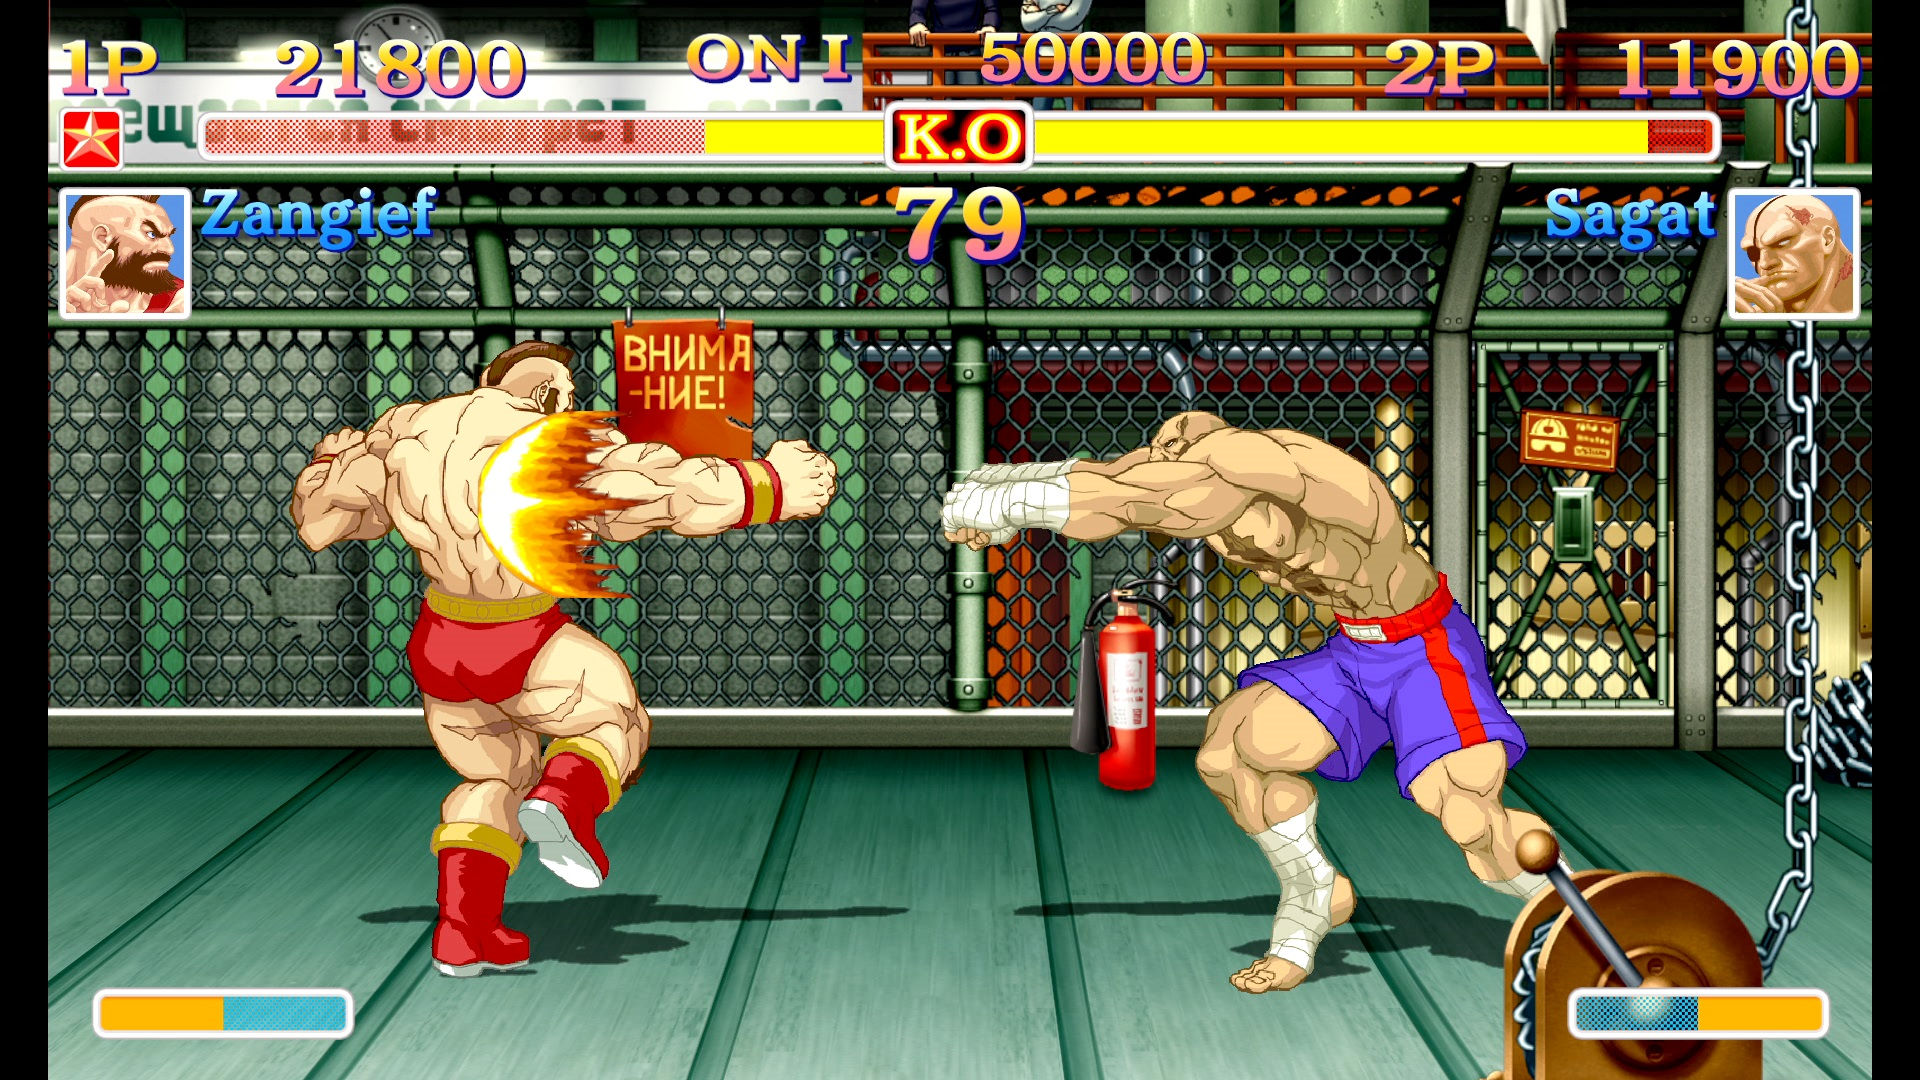 Ultra Street Fighter II Sagat Zangief